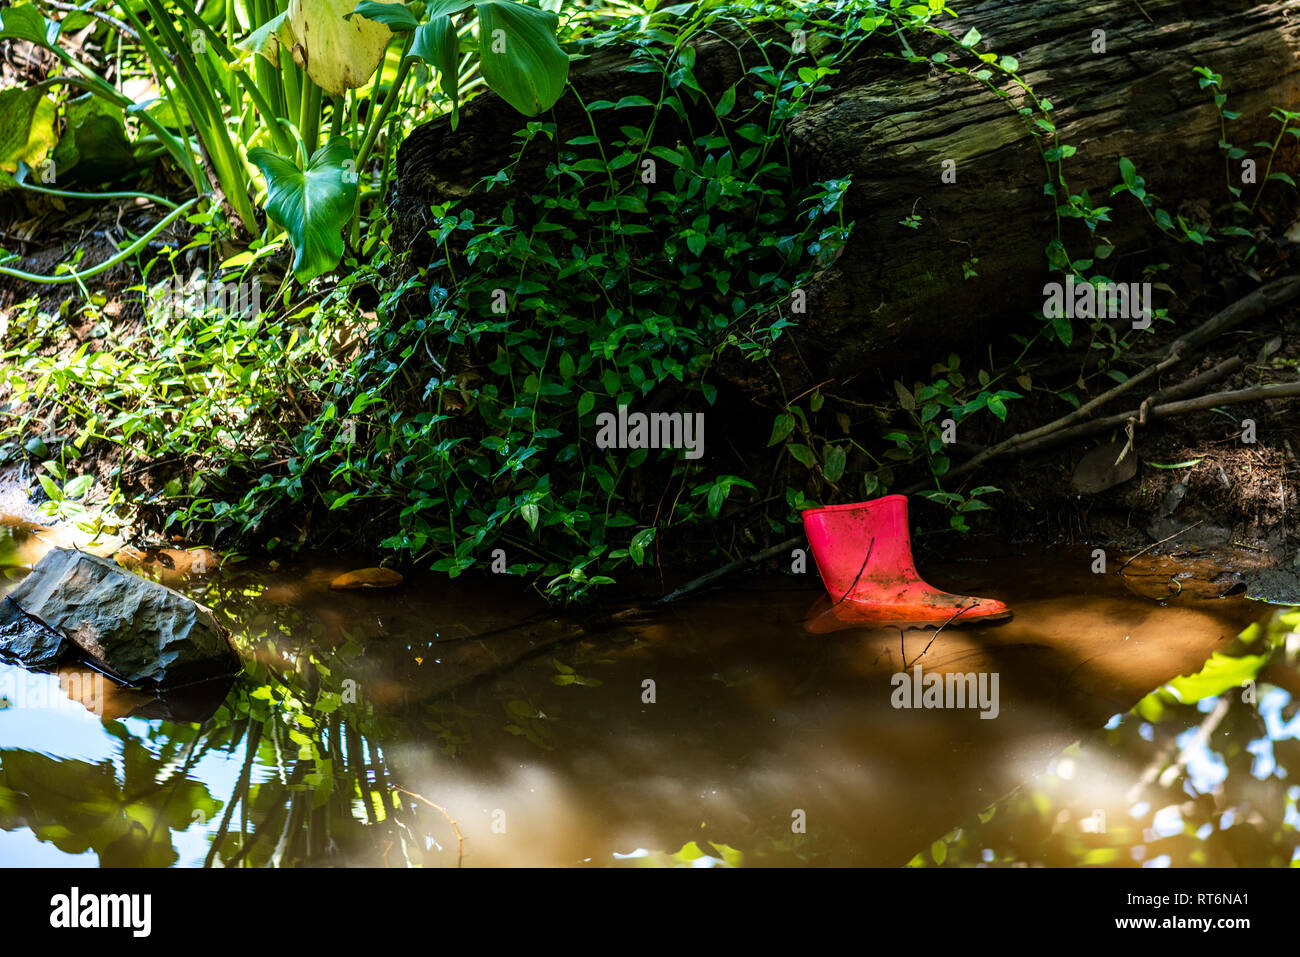 A lost rubber boot lies on the bank of a stream. - Stock Image